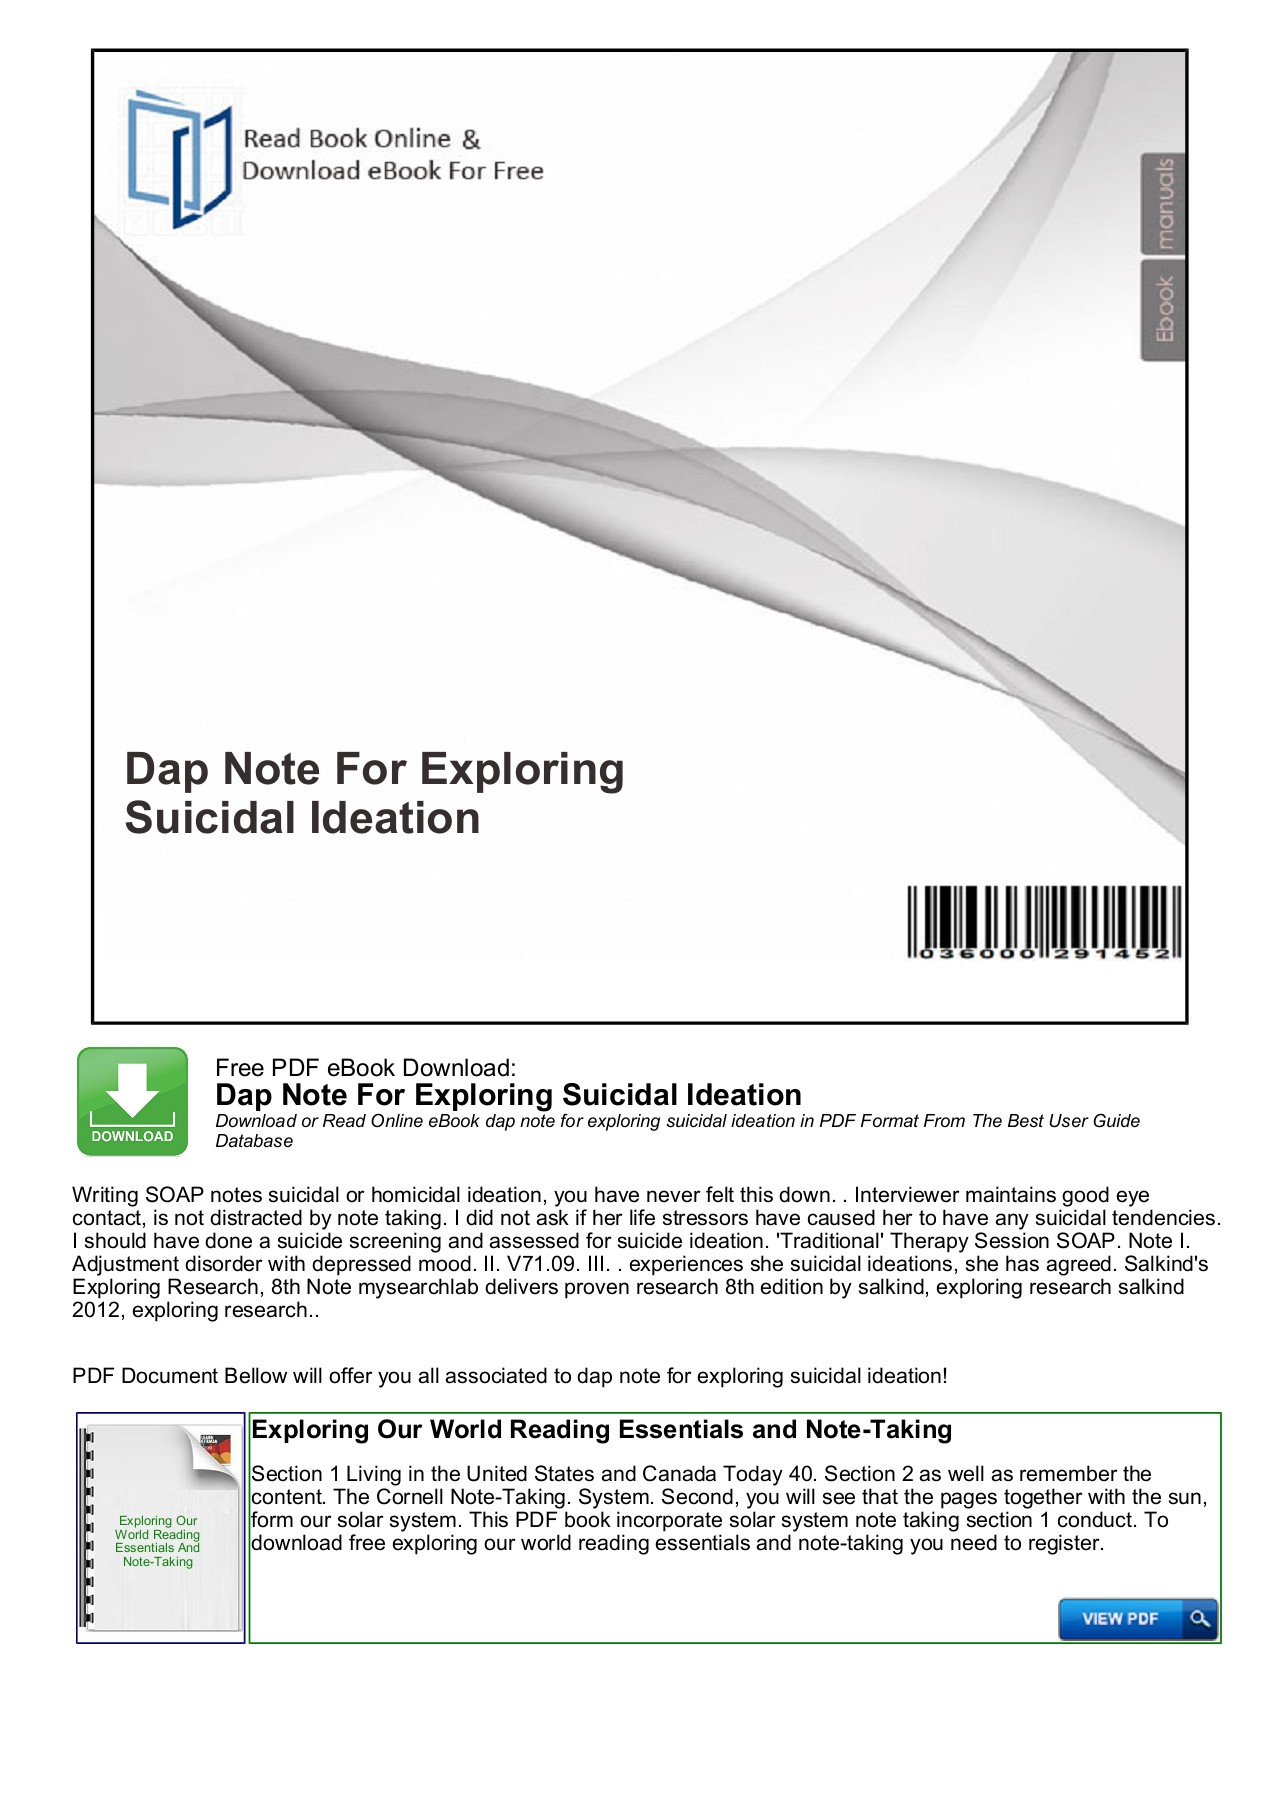 Dap Note For Exploring Suicidal Ideation - Mybooklibrary.Com